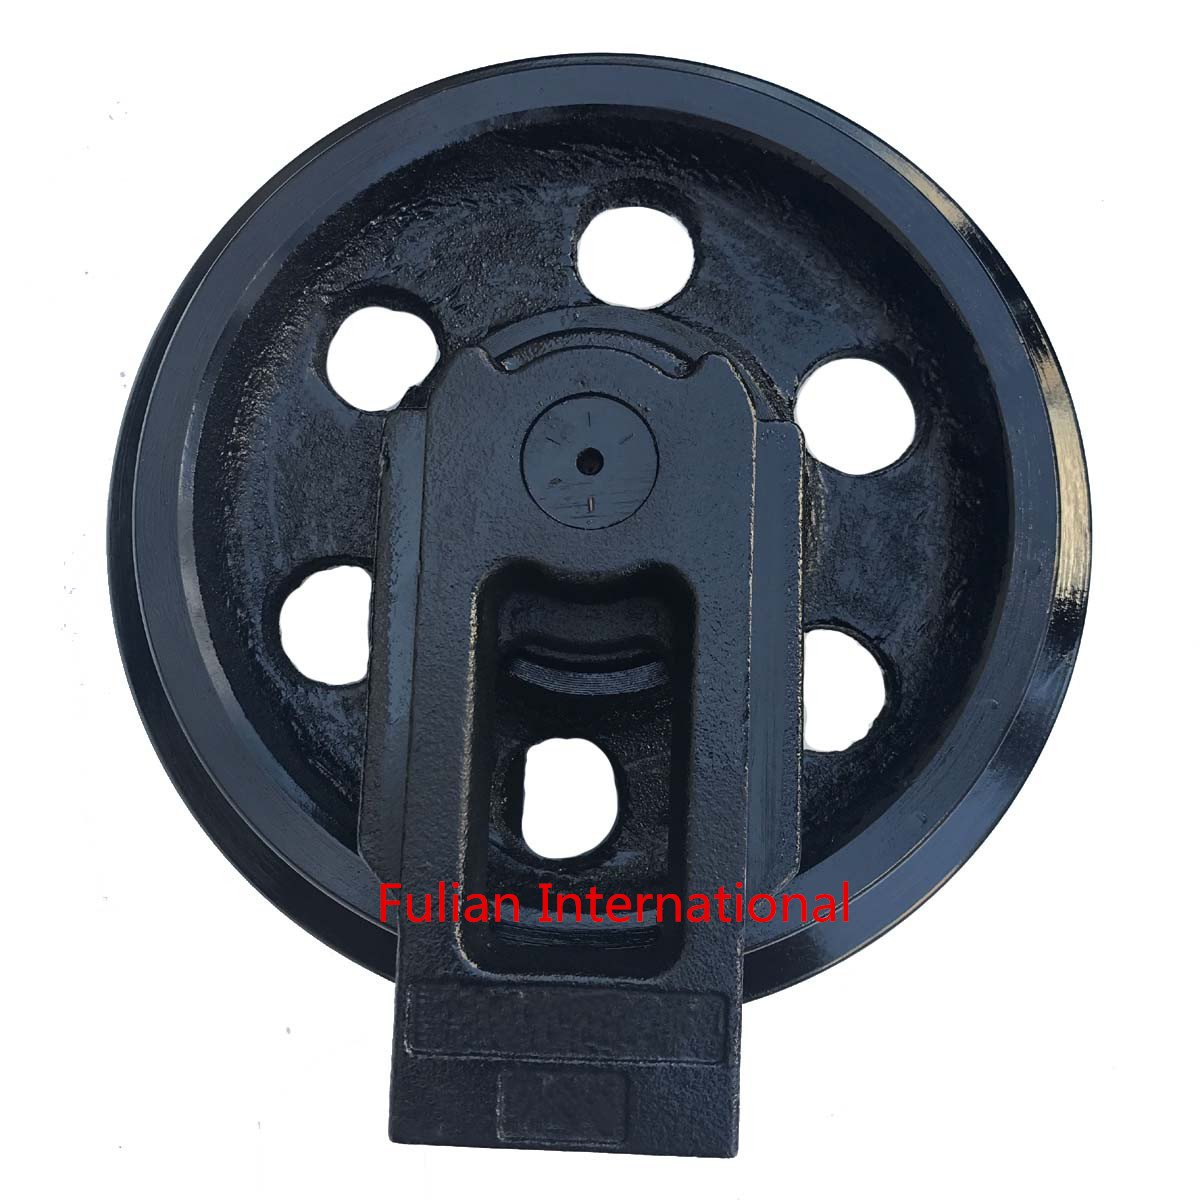 The Mini Excavator Front Idler for Kubota KX71-3